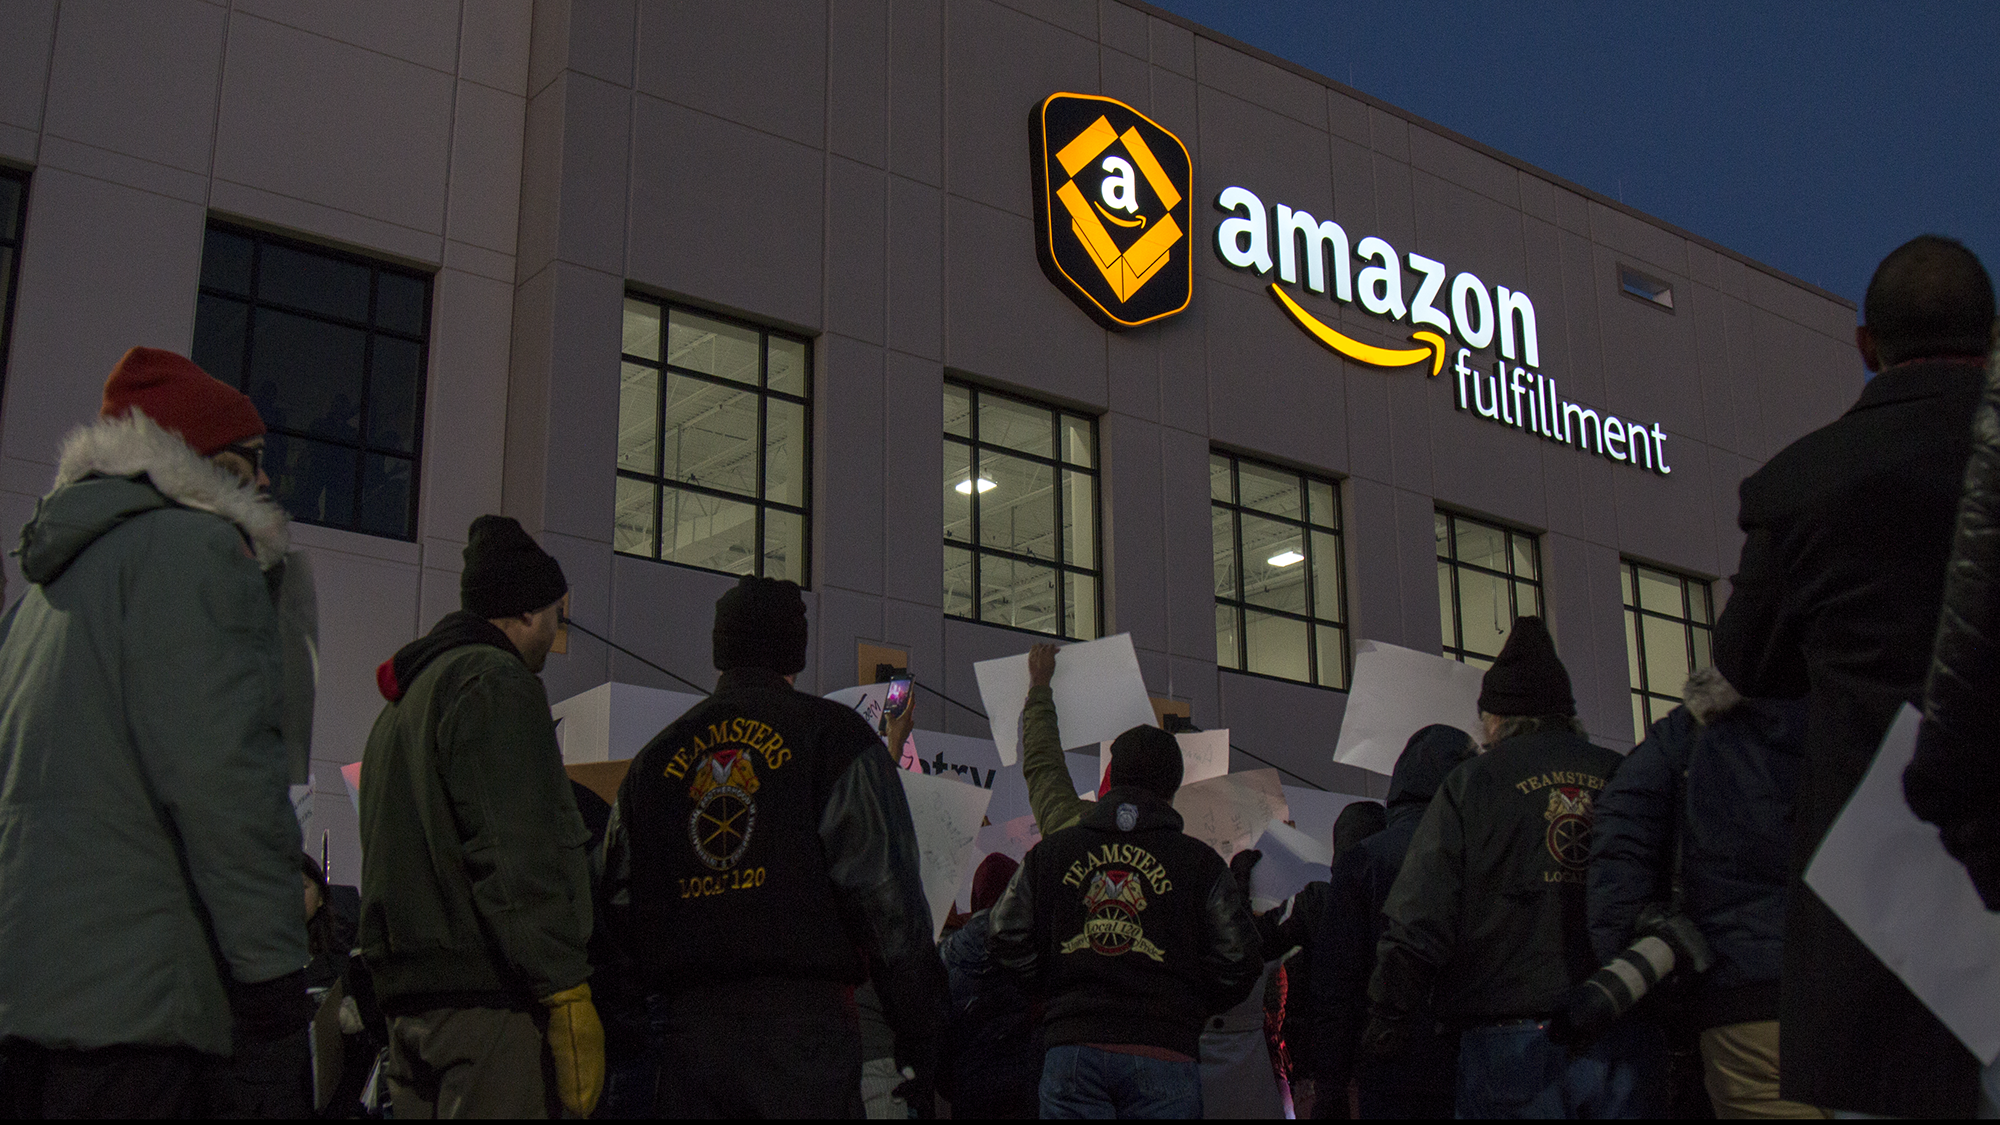 Hundreds March On Amazon Fulfillment Center In Minnesota